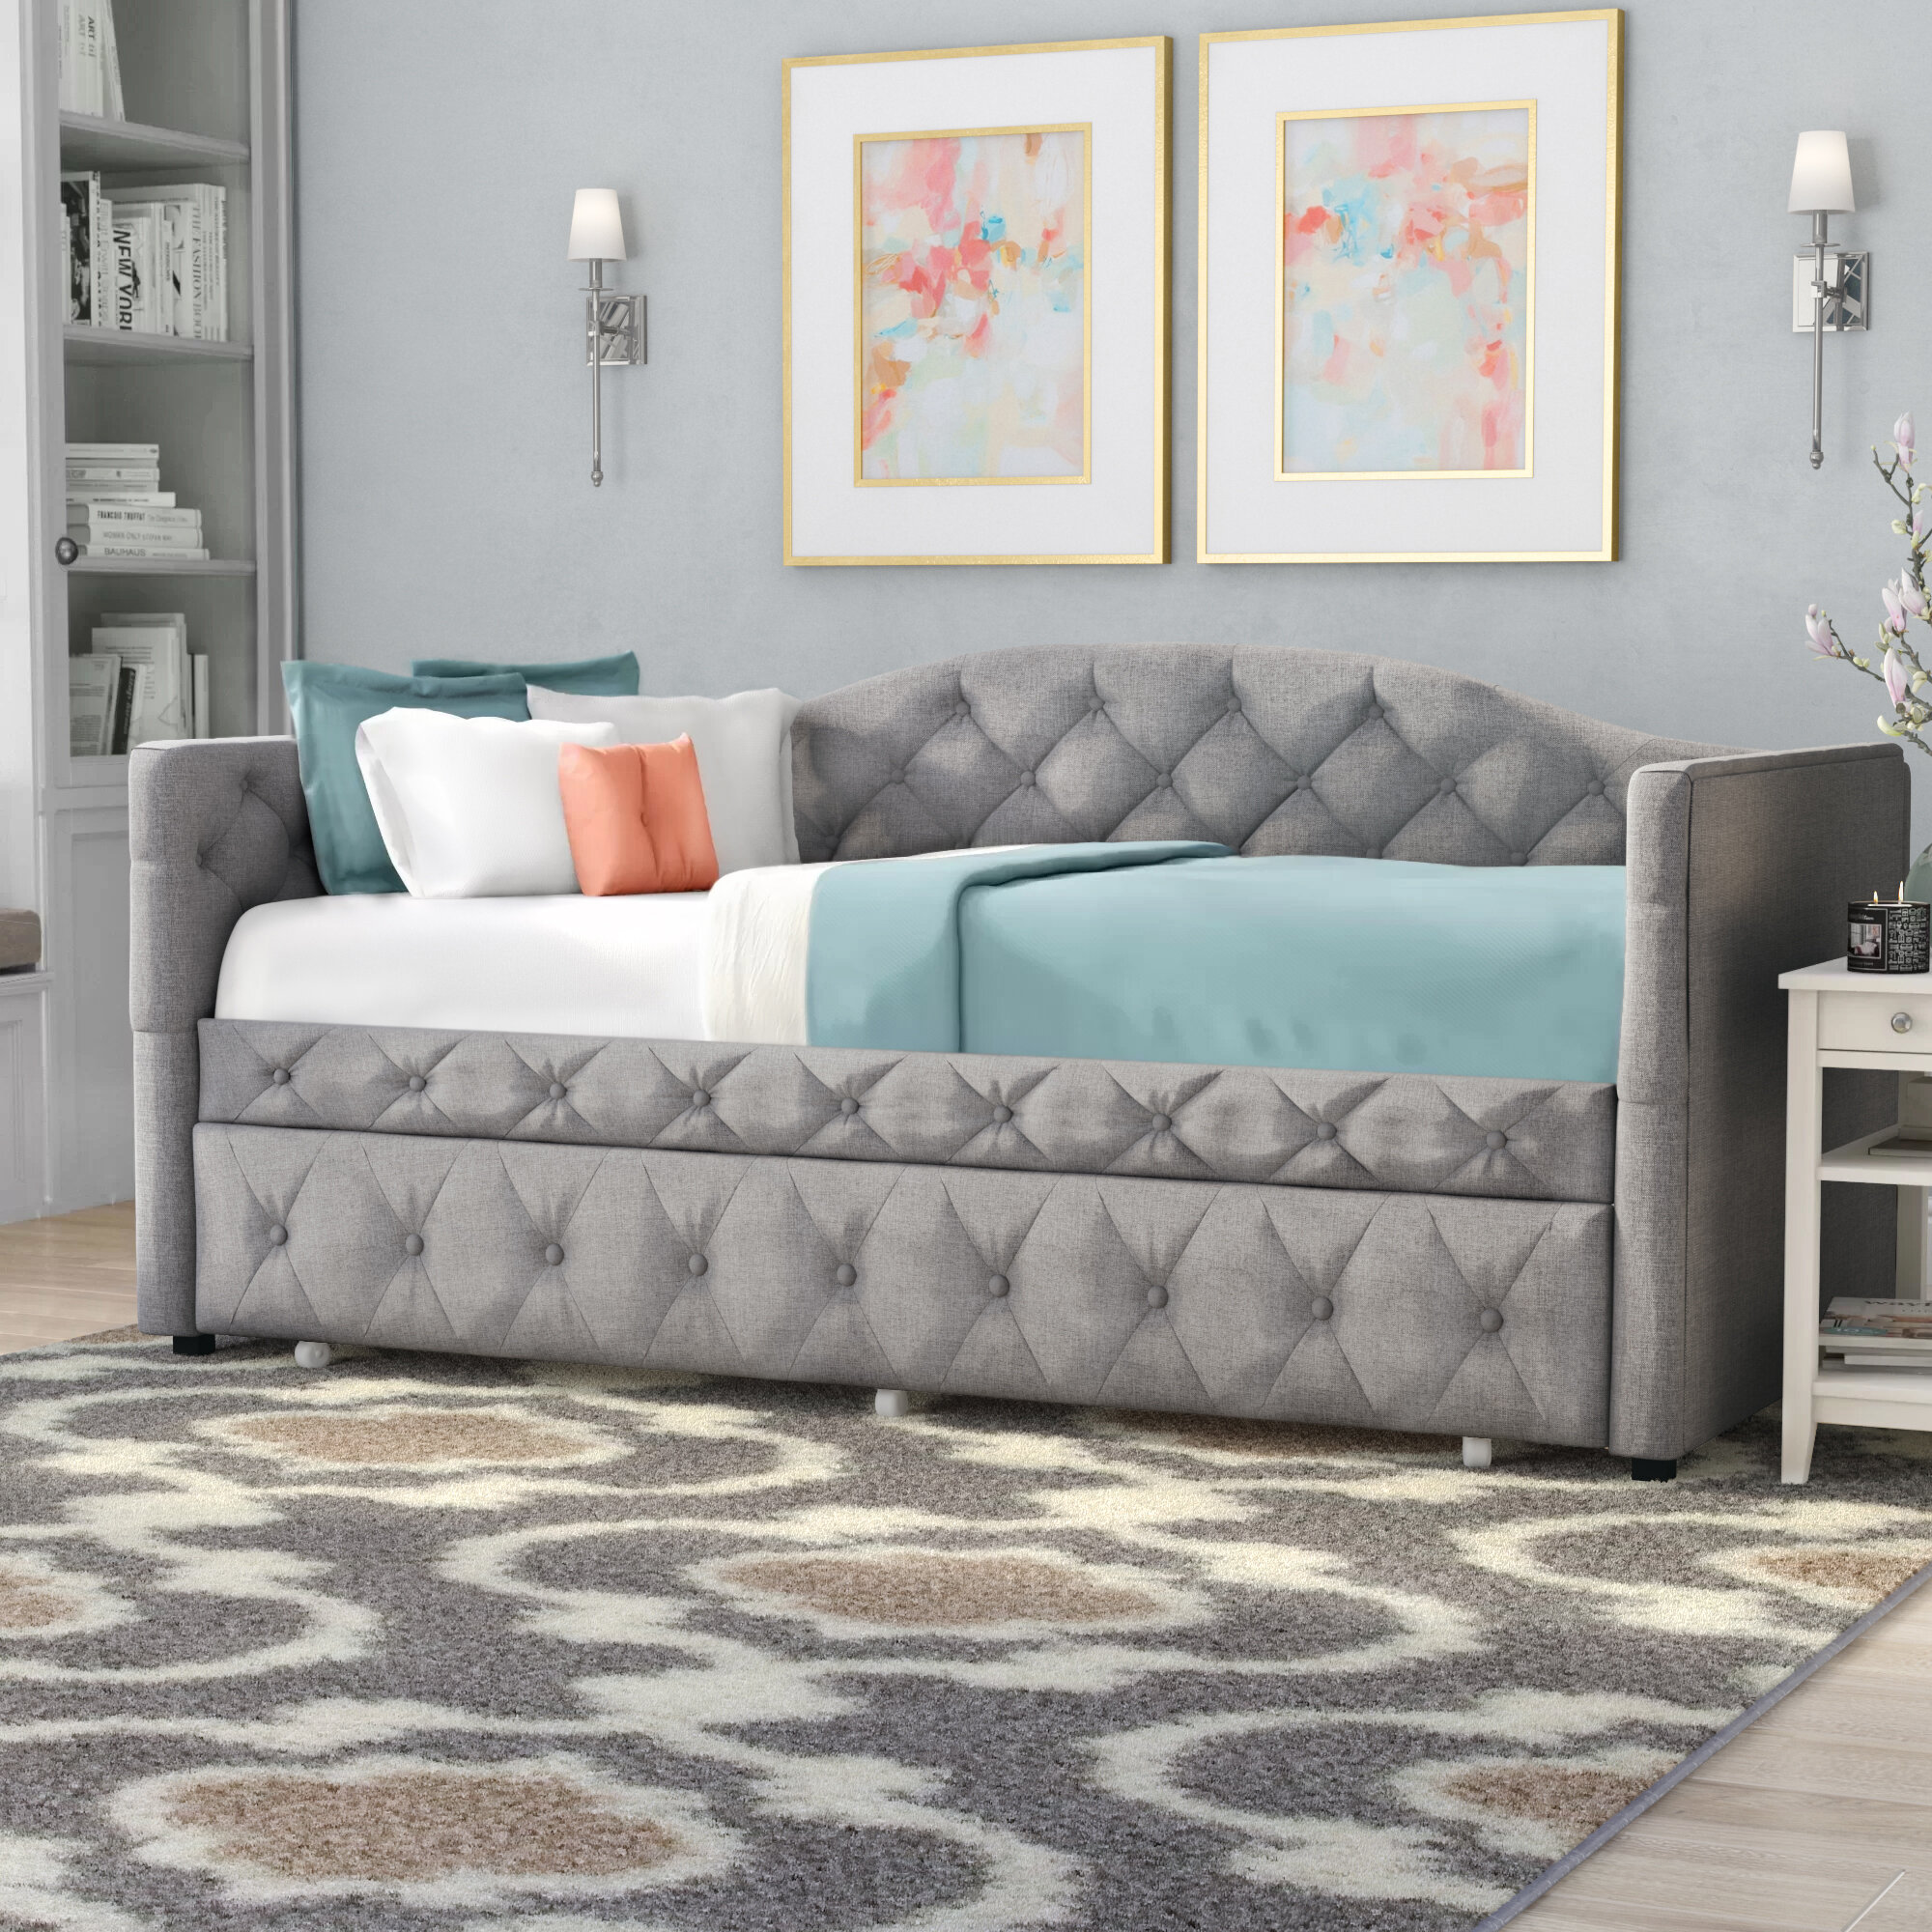 Grovelane Julianna Daybed With Trundle Reviews